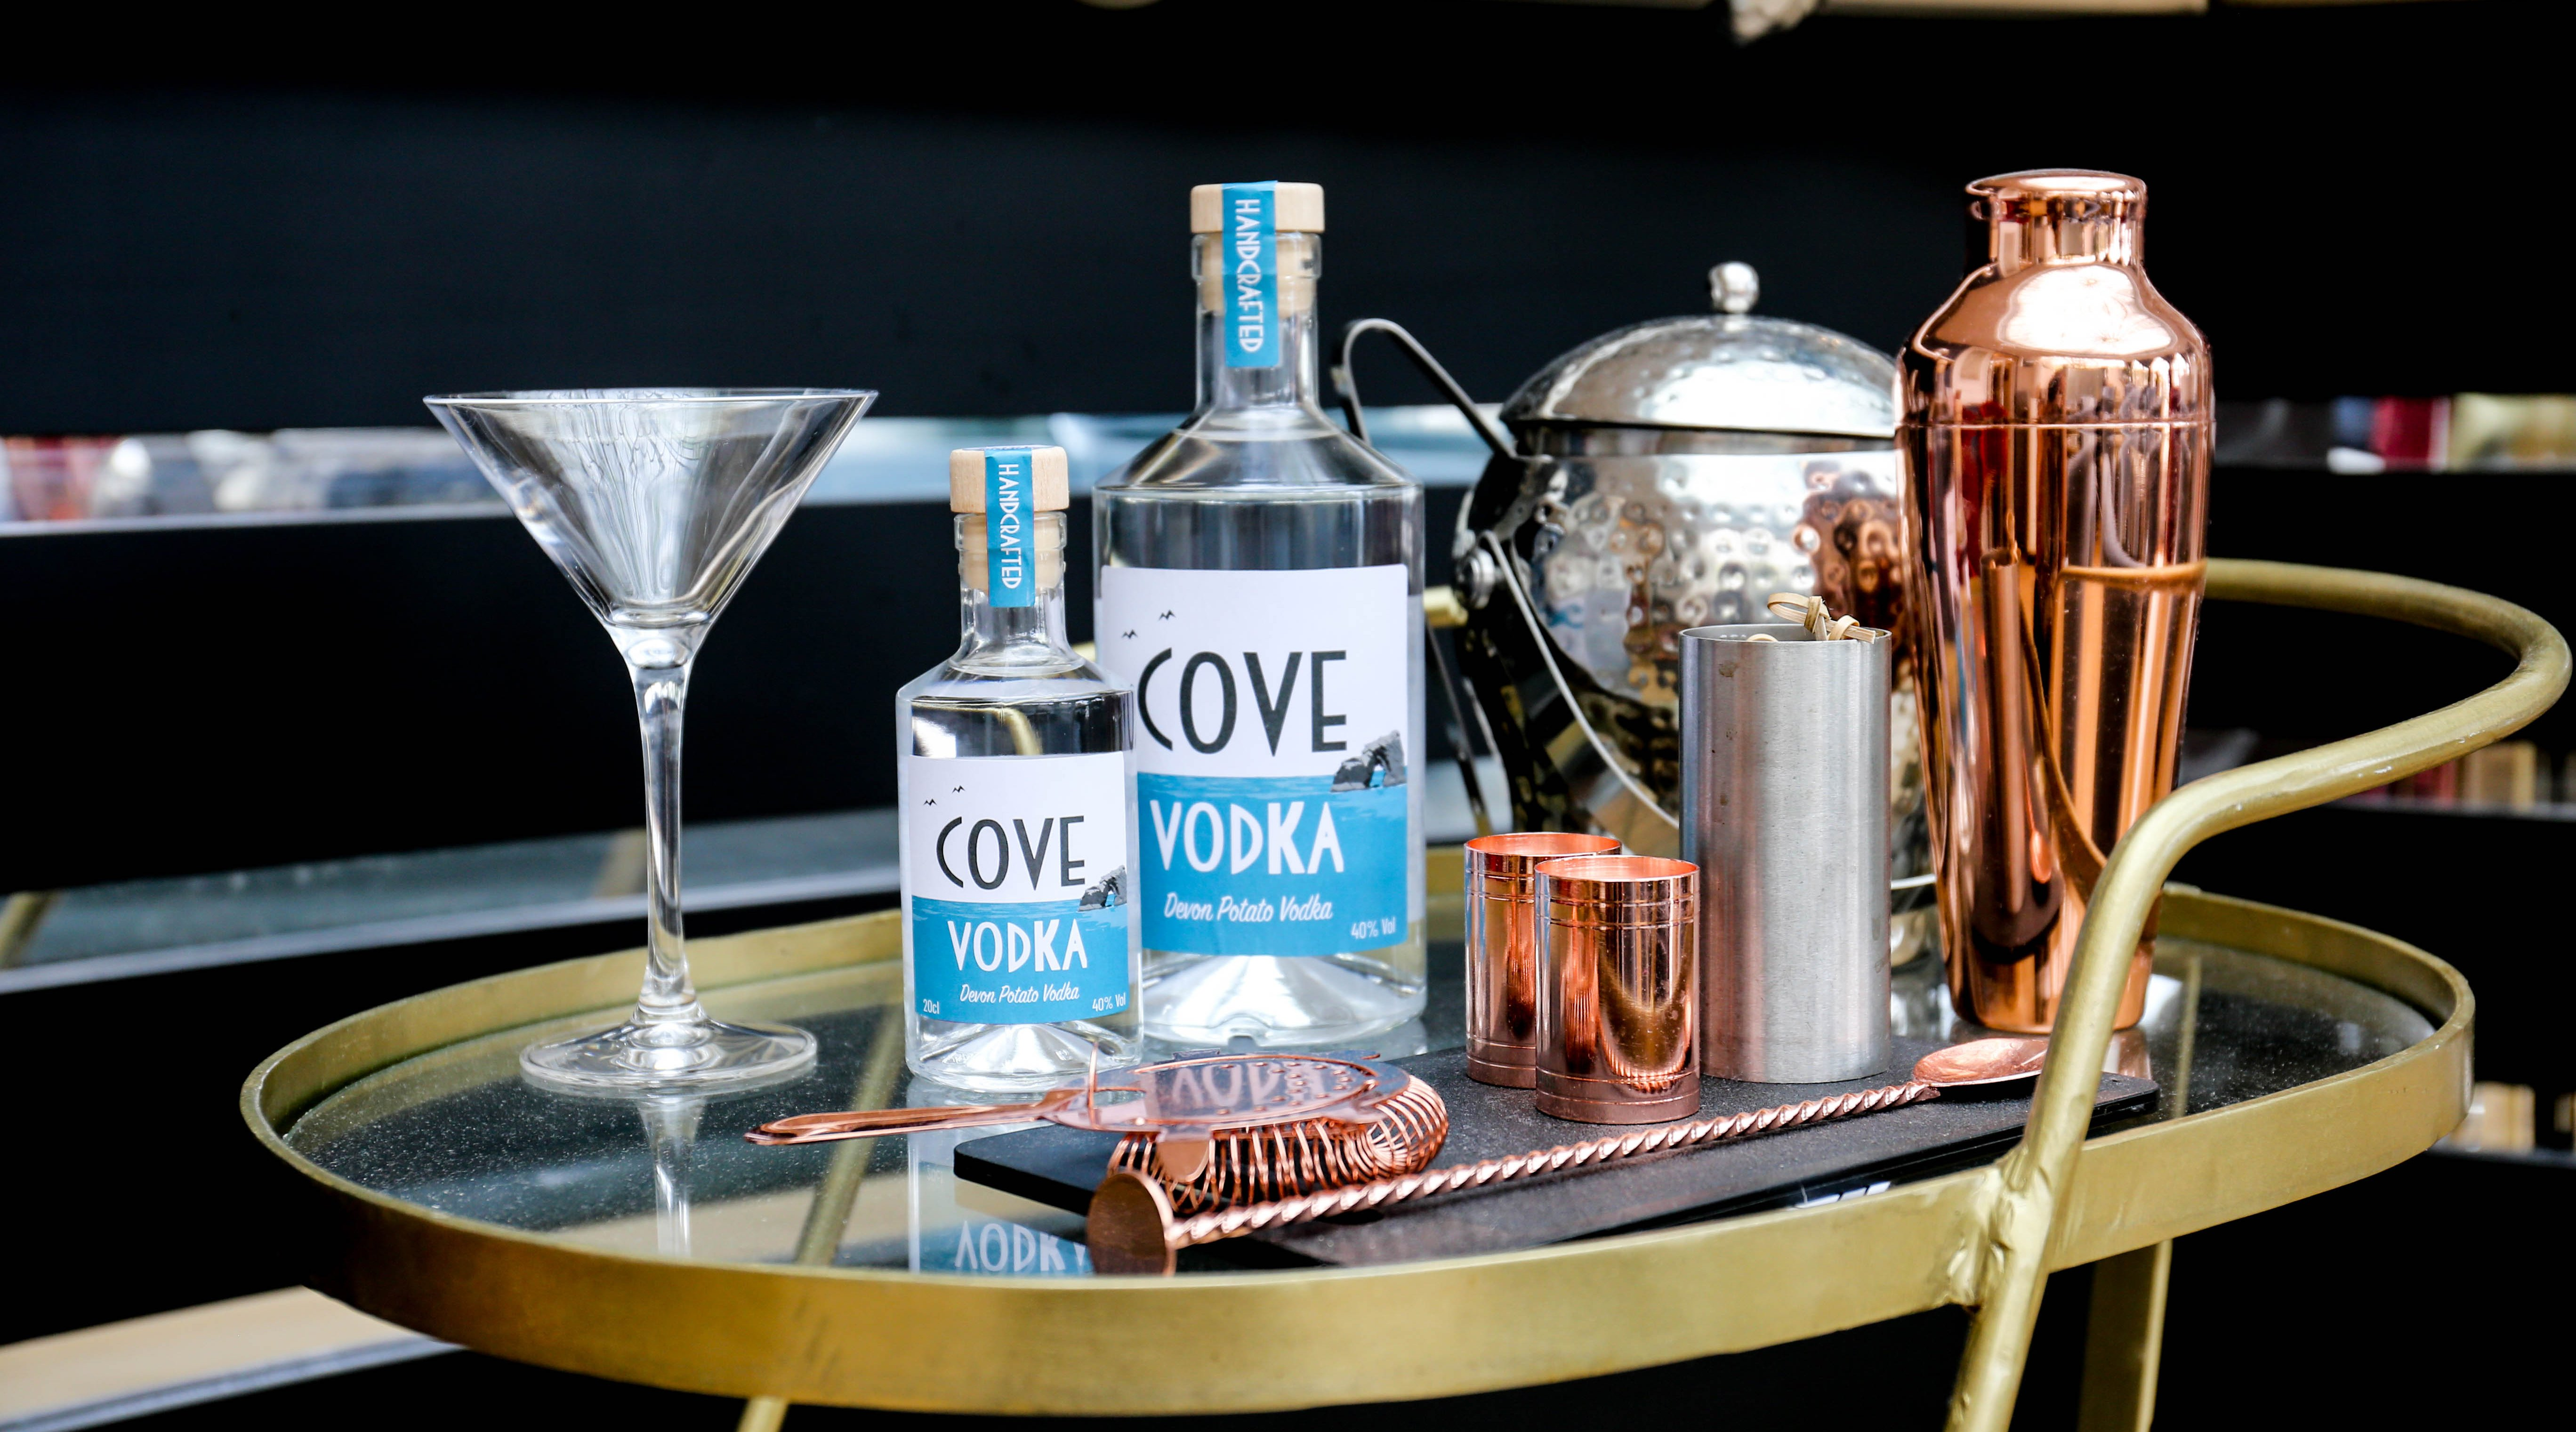 Cove Vodka Cocktail tray at Burgh Island